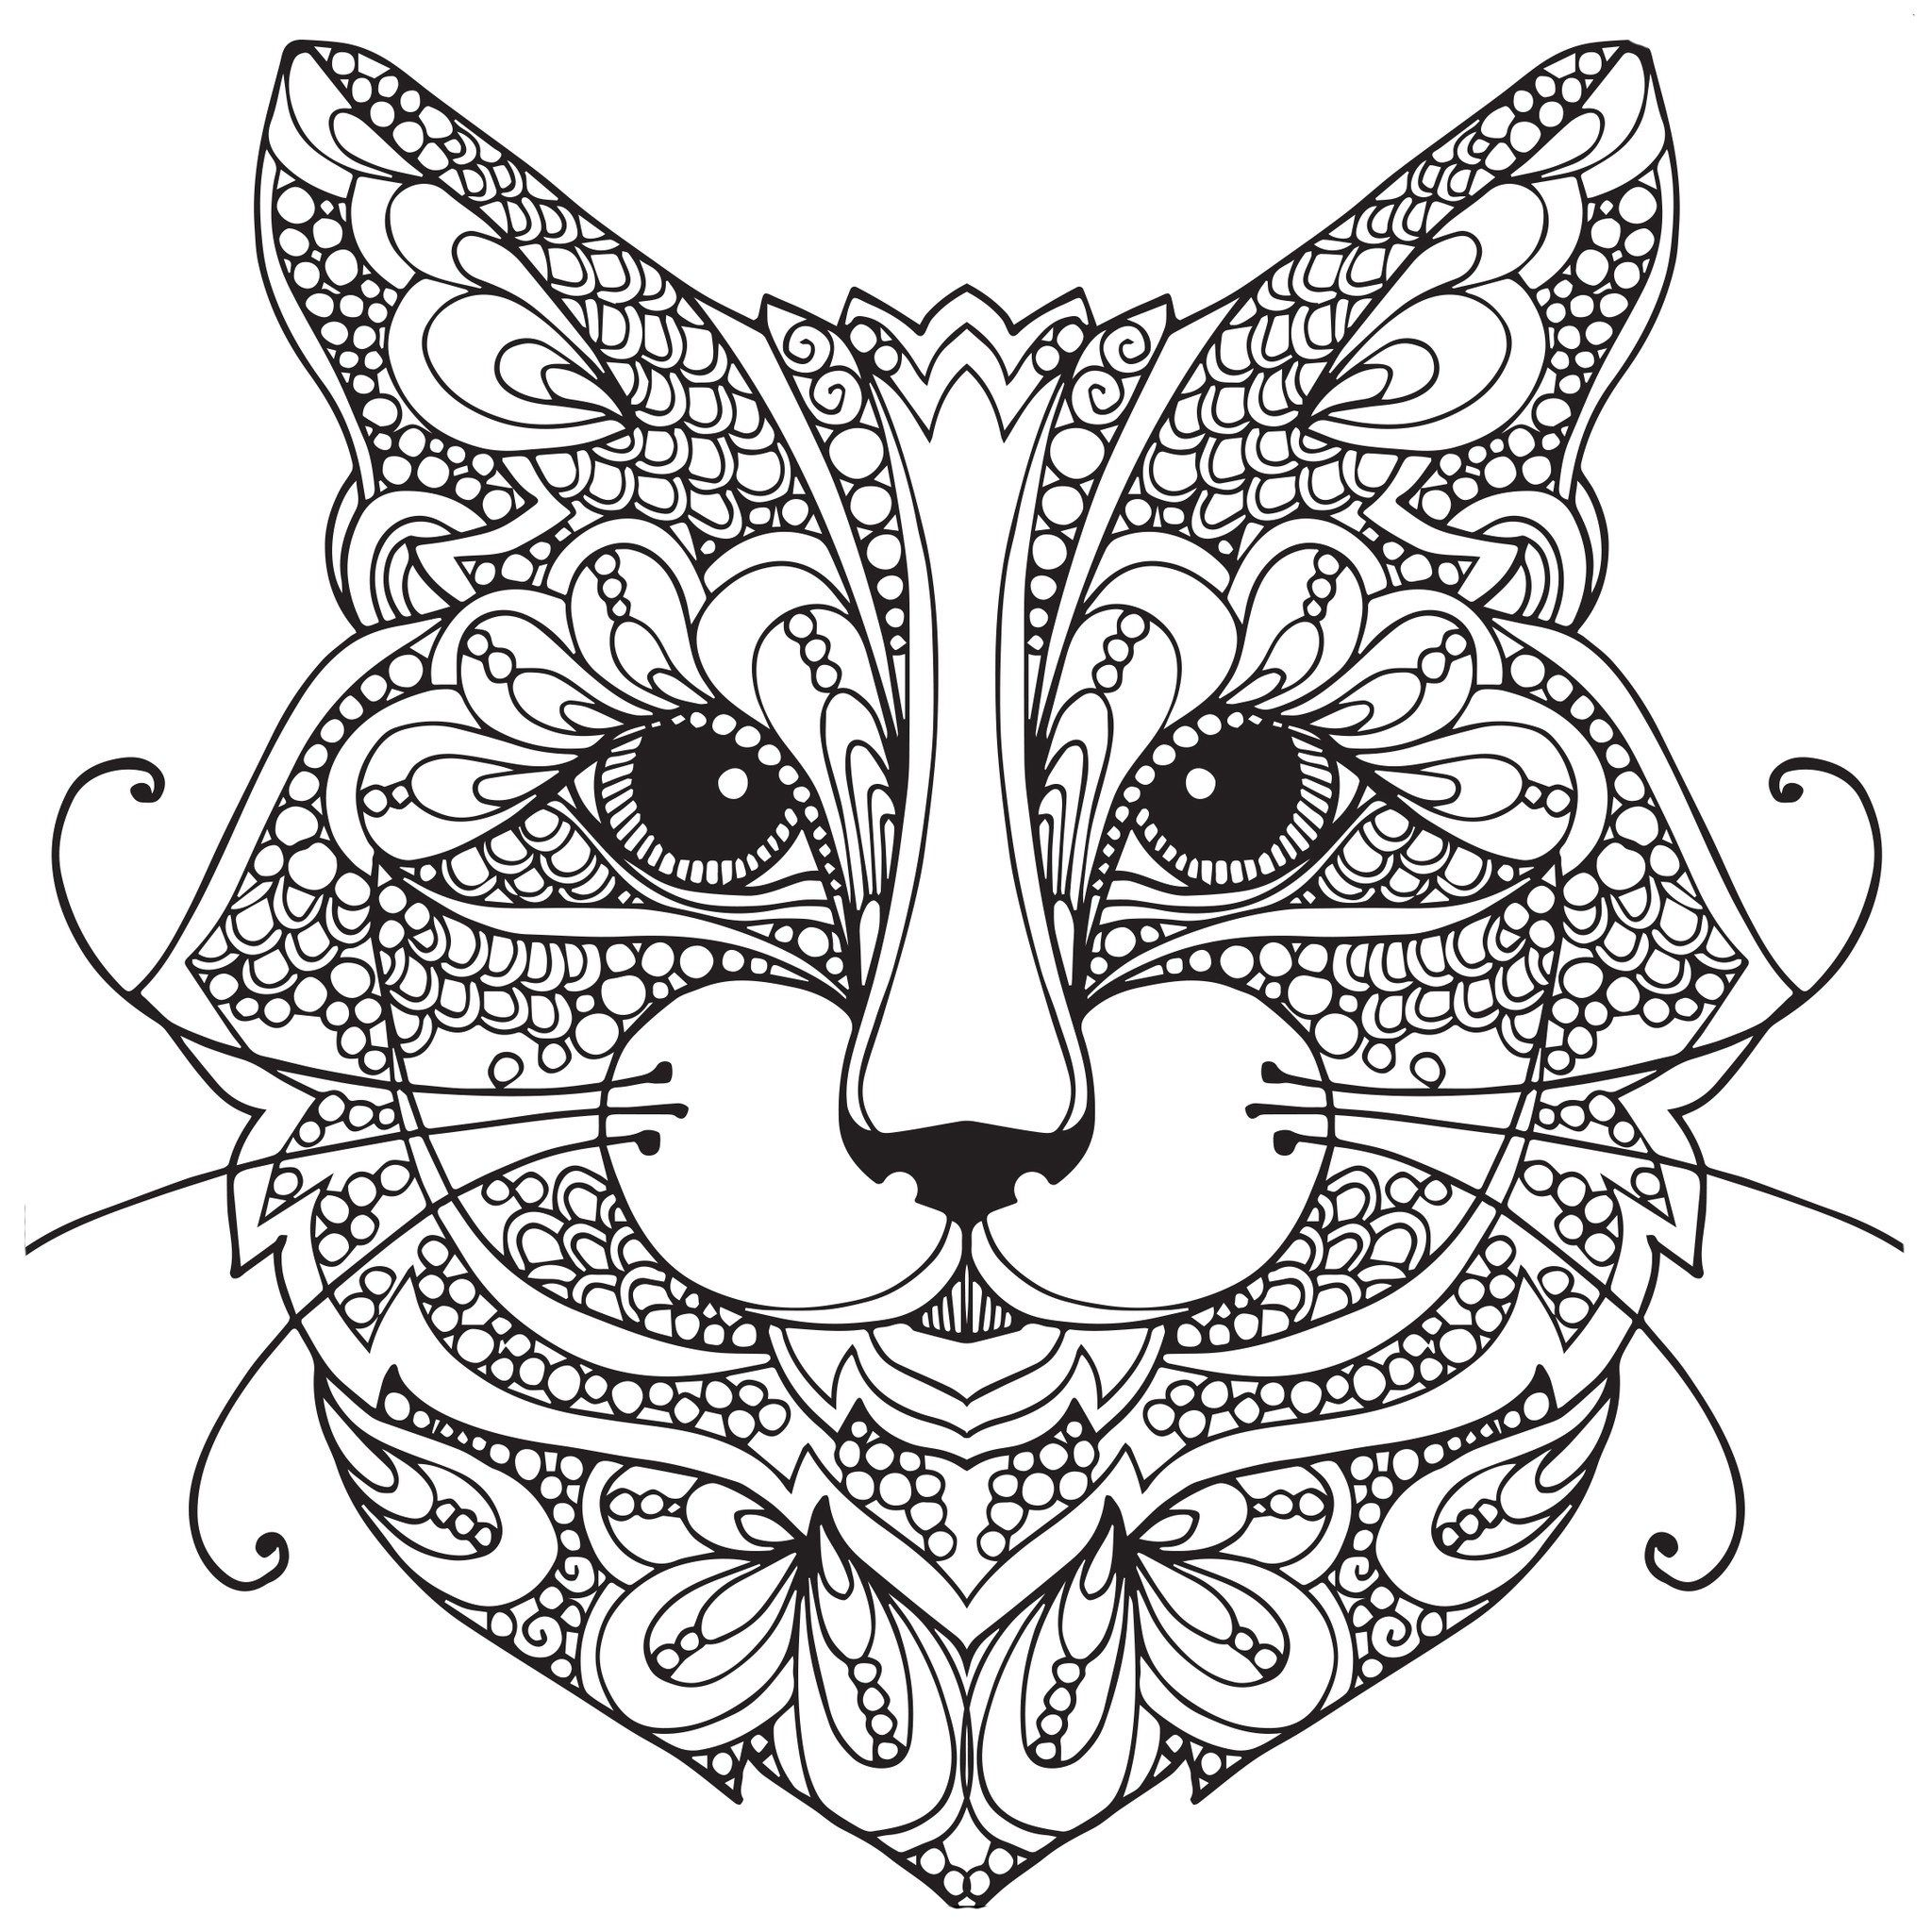 Adult coloring pages cat 1 coloring pages pinterest Colouring book for adults online